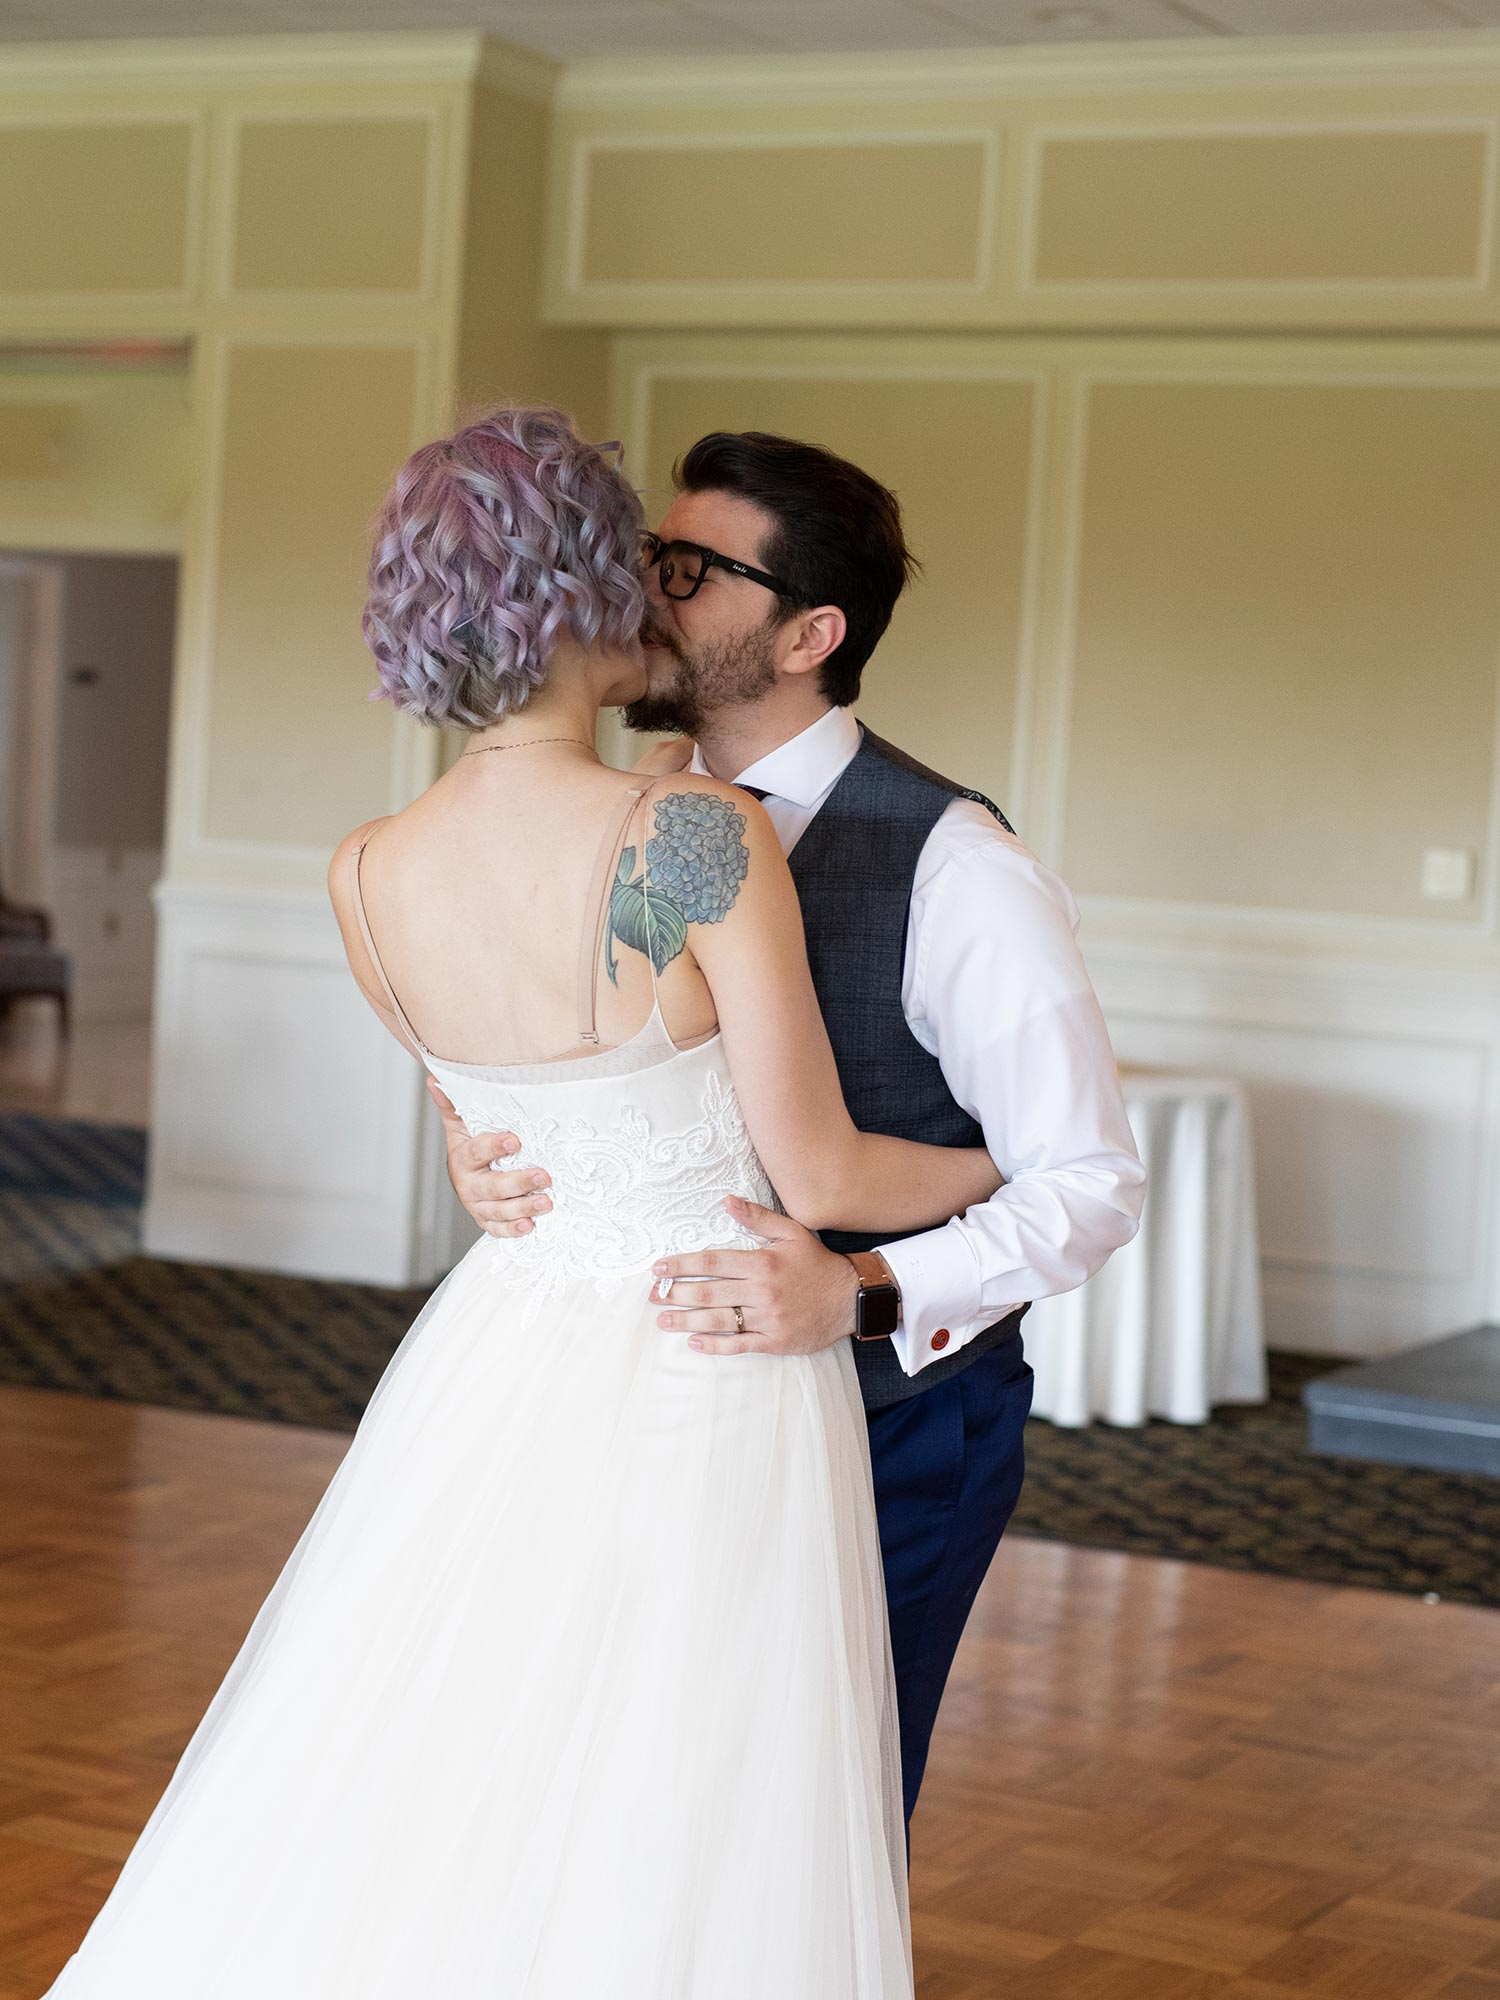 Chic Queer Wedding in West Chester Pennsylvania showing couple during first dance Judson Rappaport Photography